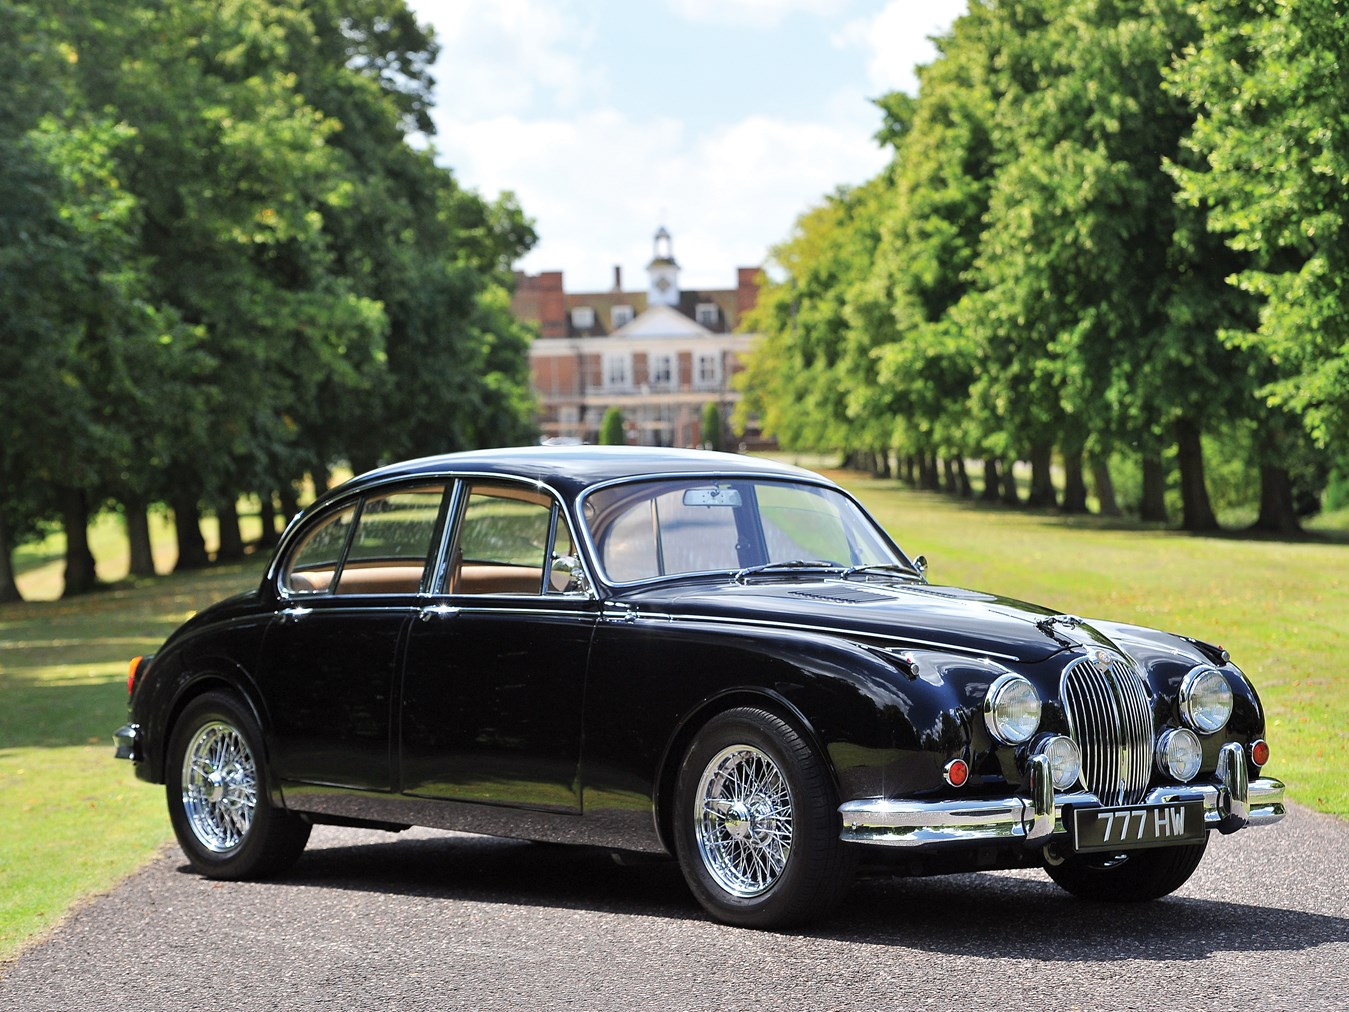 rm sotheby 39 s 1961 jaguar mark 2 4 2 saloon london 2014. Black Bedroom Furniture Sets. Home Design Ideas